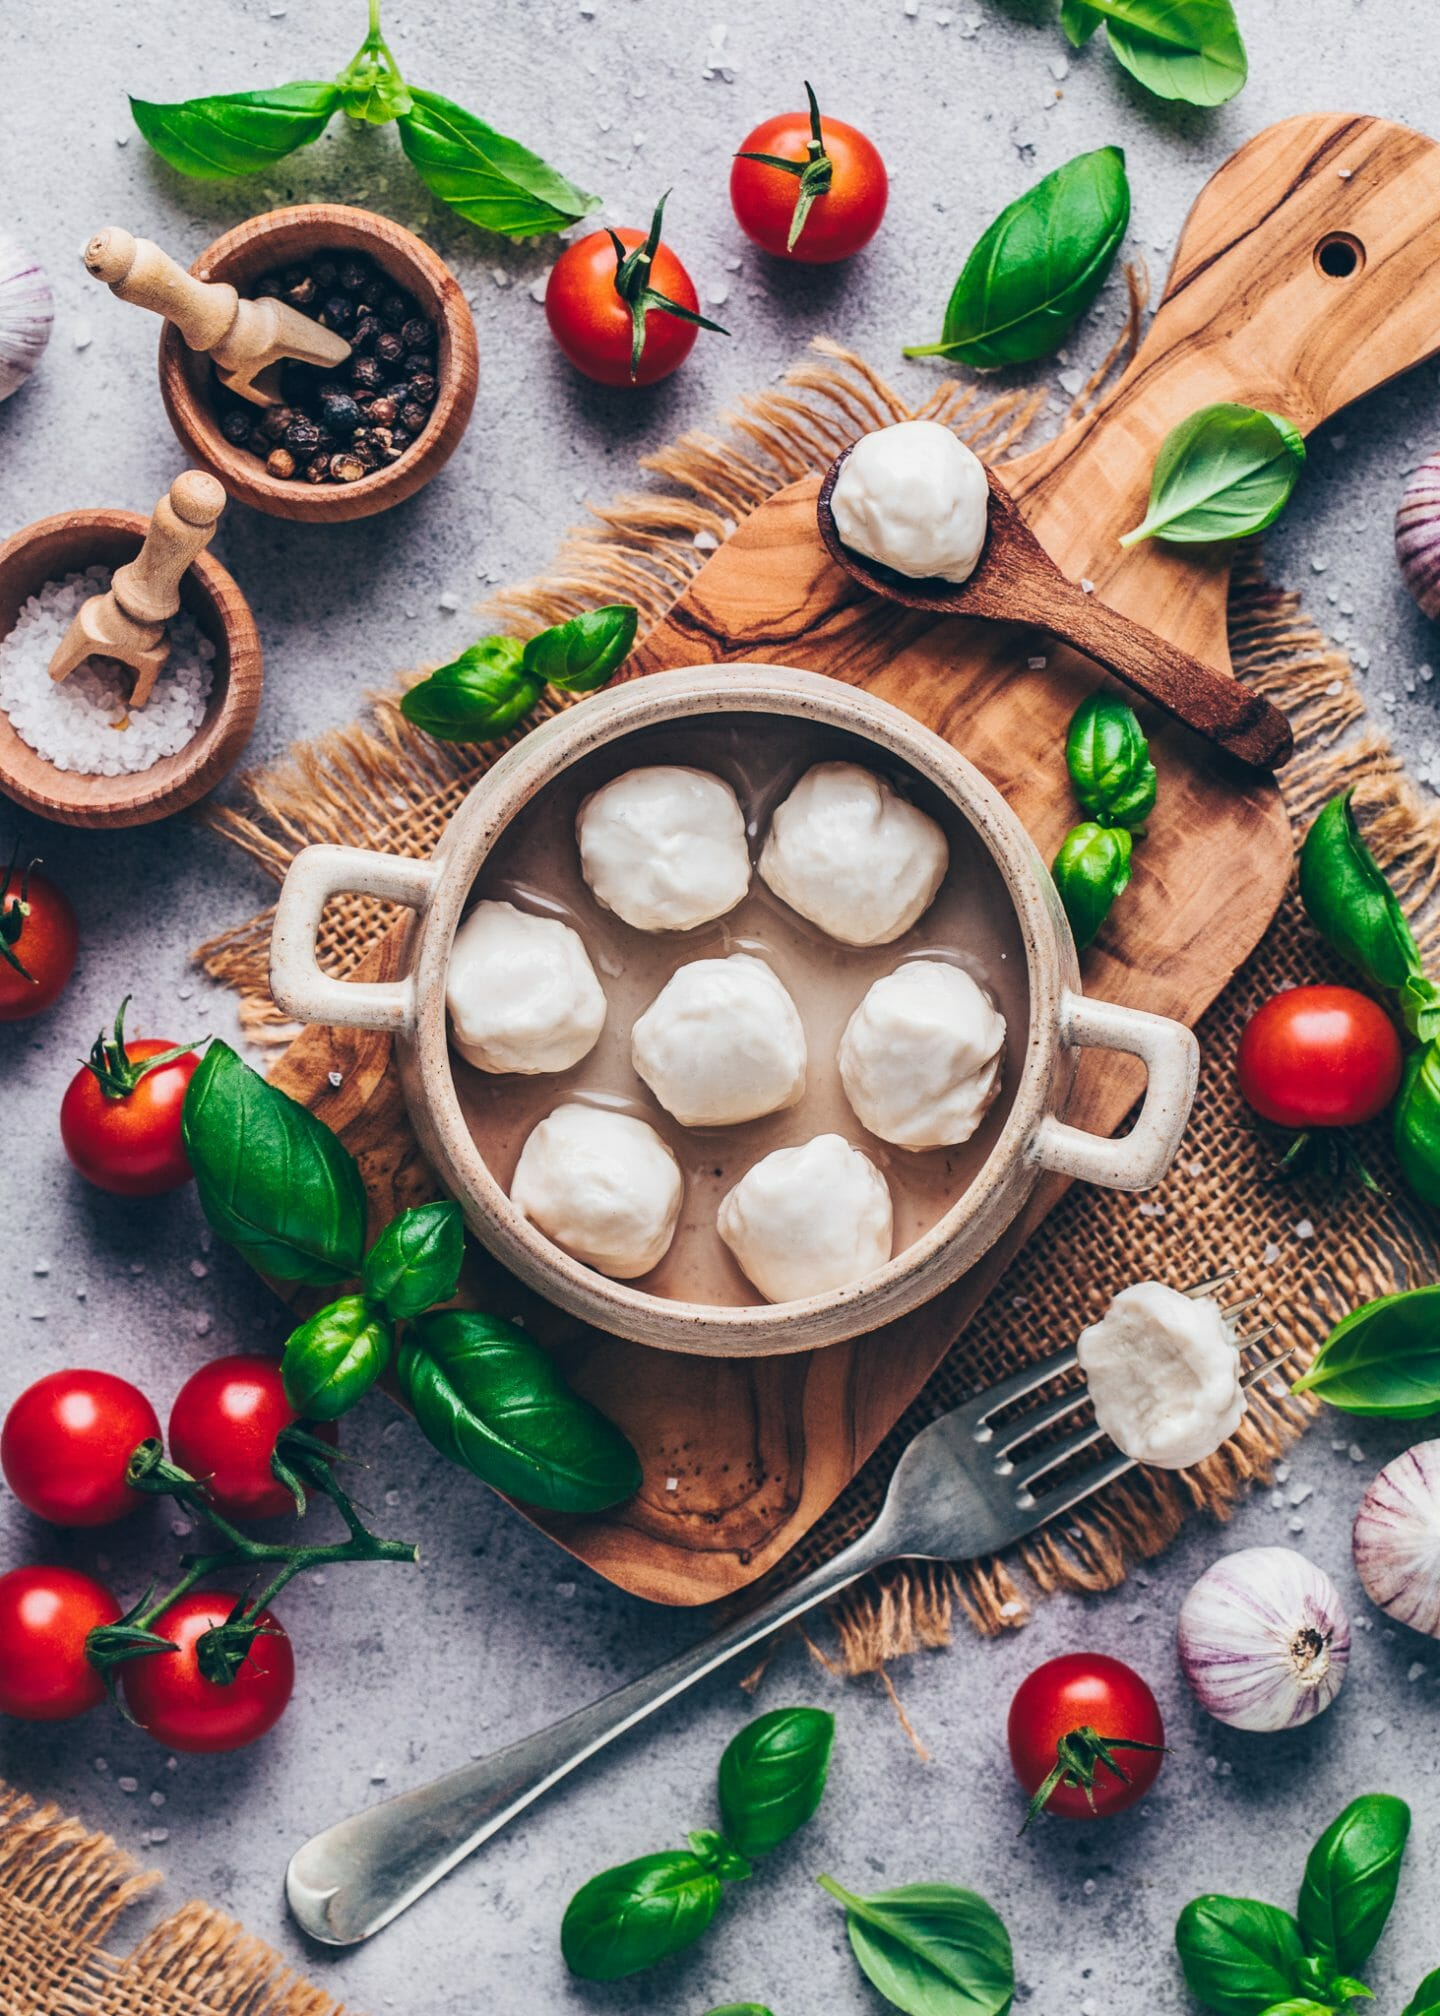 vegan mini mozzarella balls (homemade dairy-free cashew cheese)